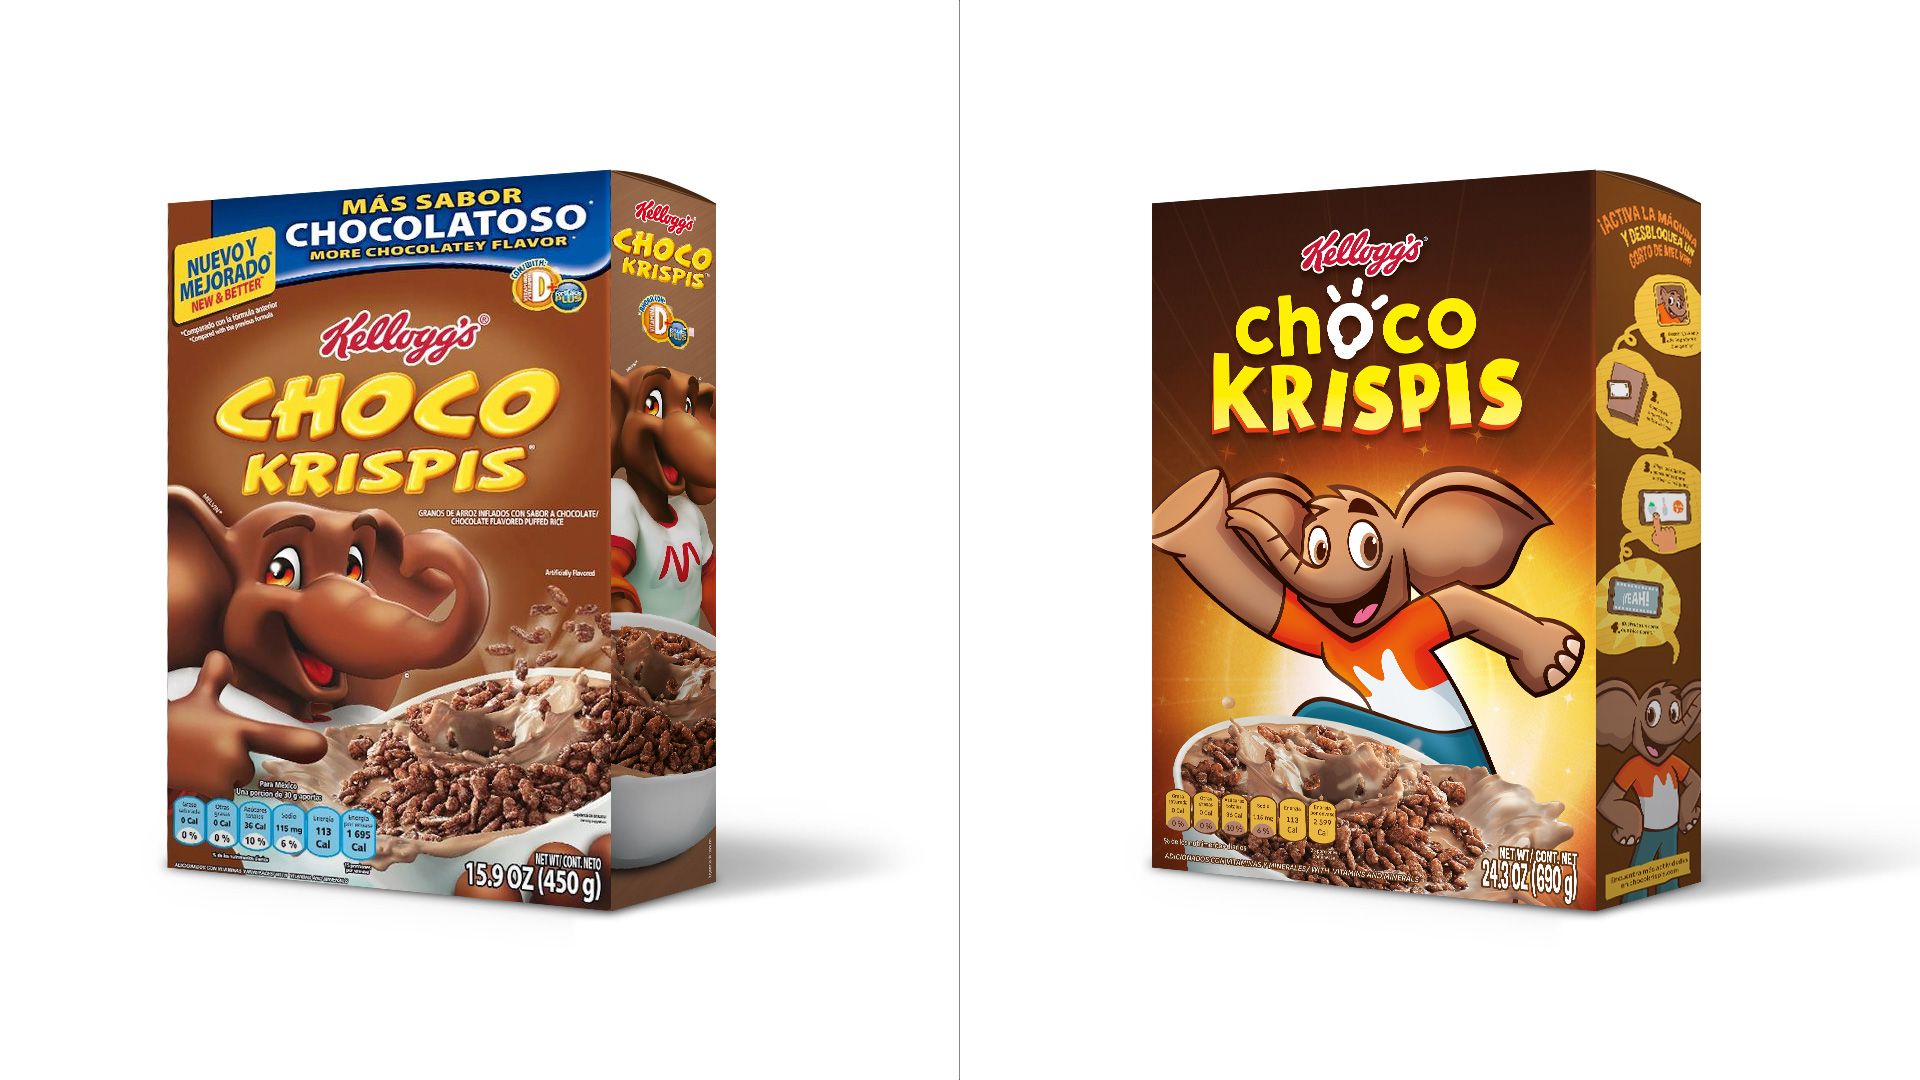 New Logo and Packaging for Choco Krispis by Interbrand